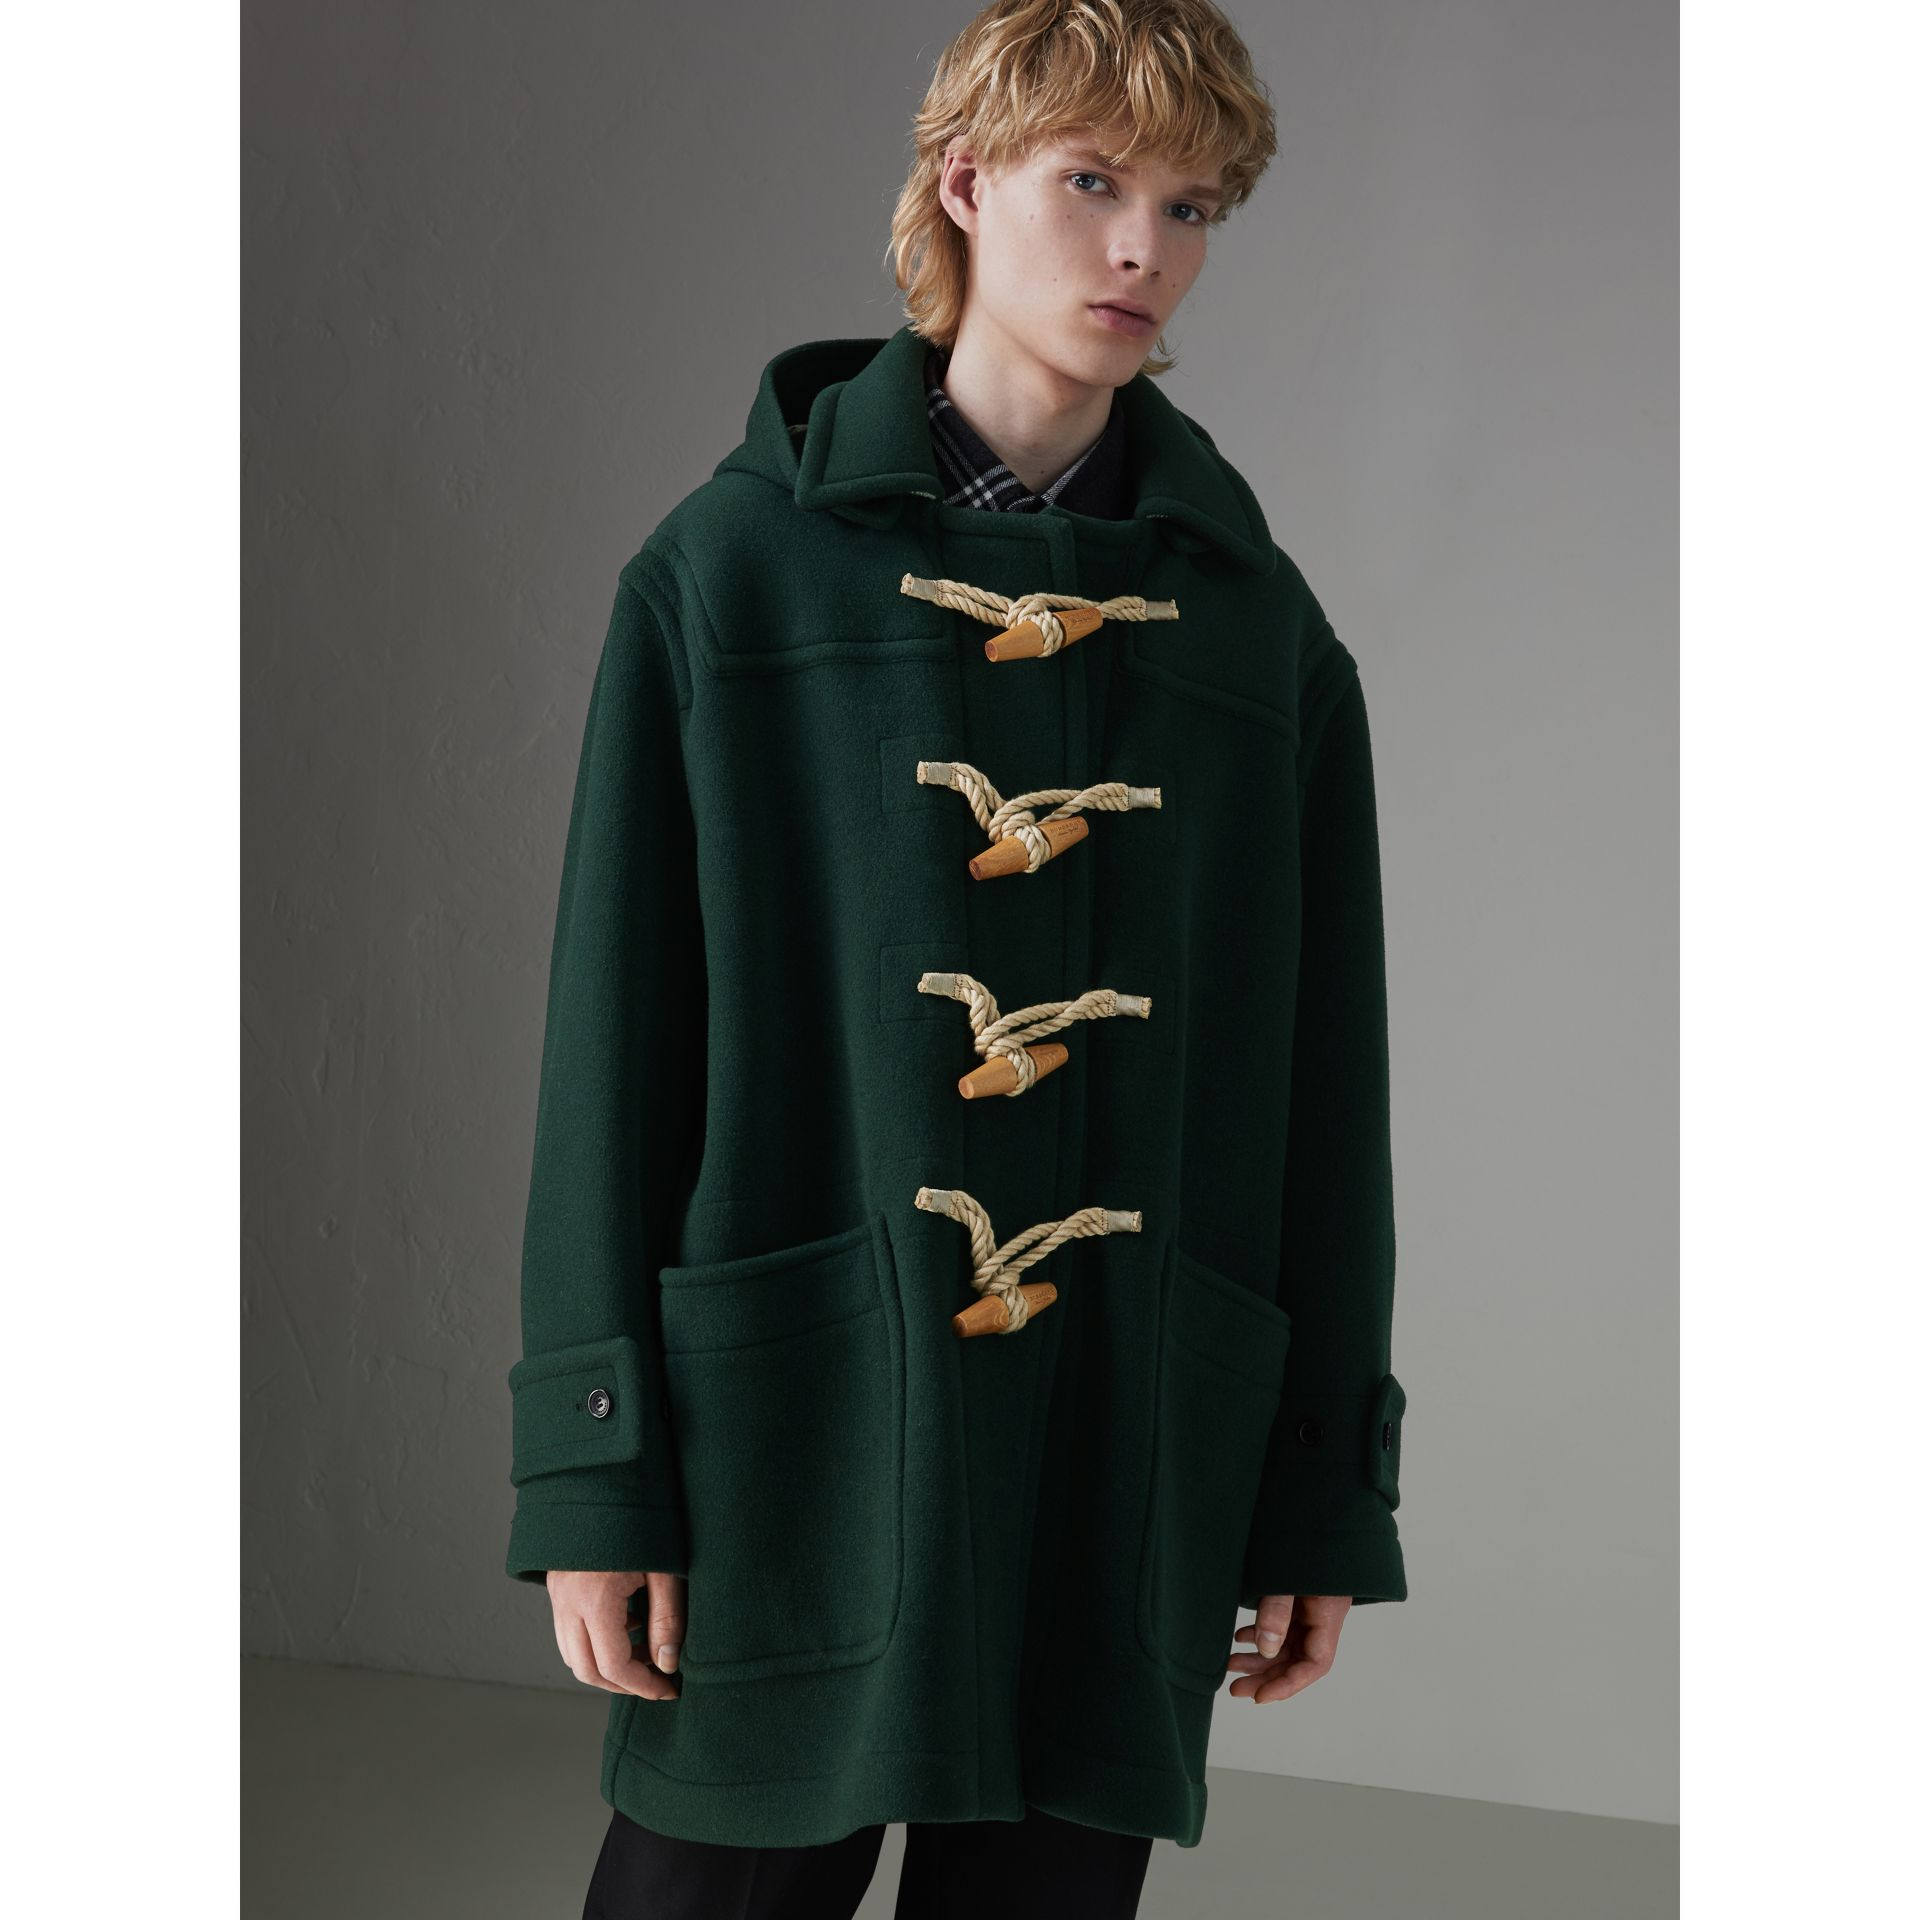 Gosha x Burberry Oversized Duffle Coat in Dark Forest Green | Burberry Australia - gallery image 6